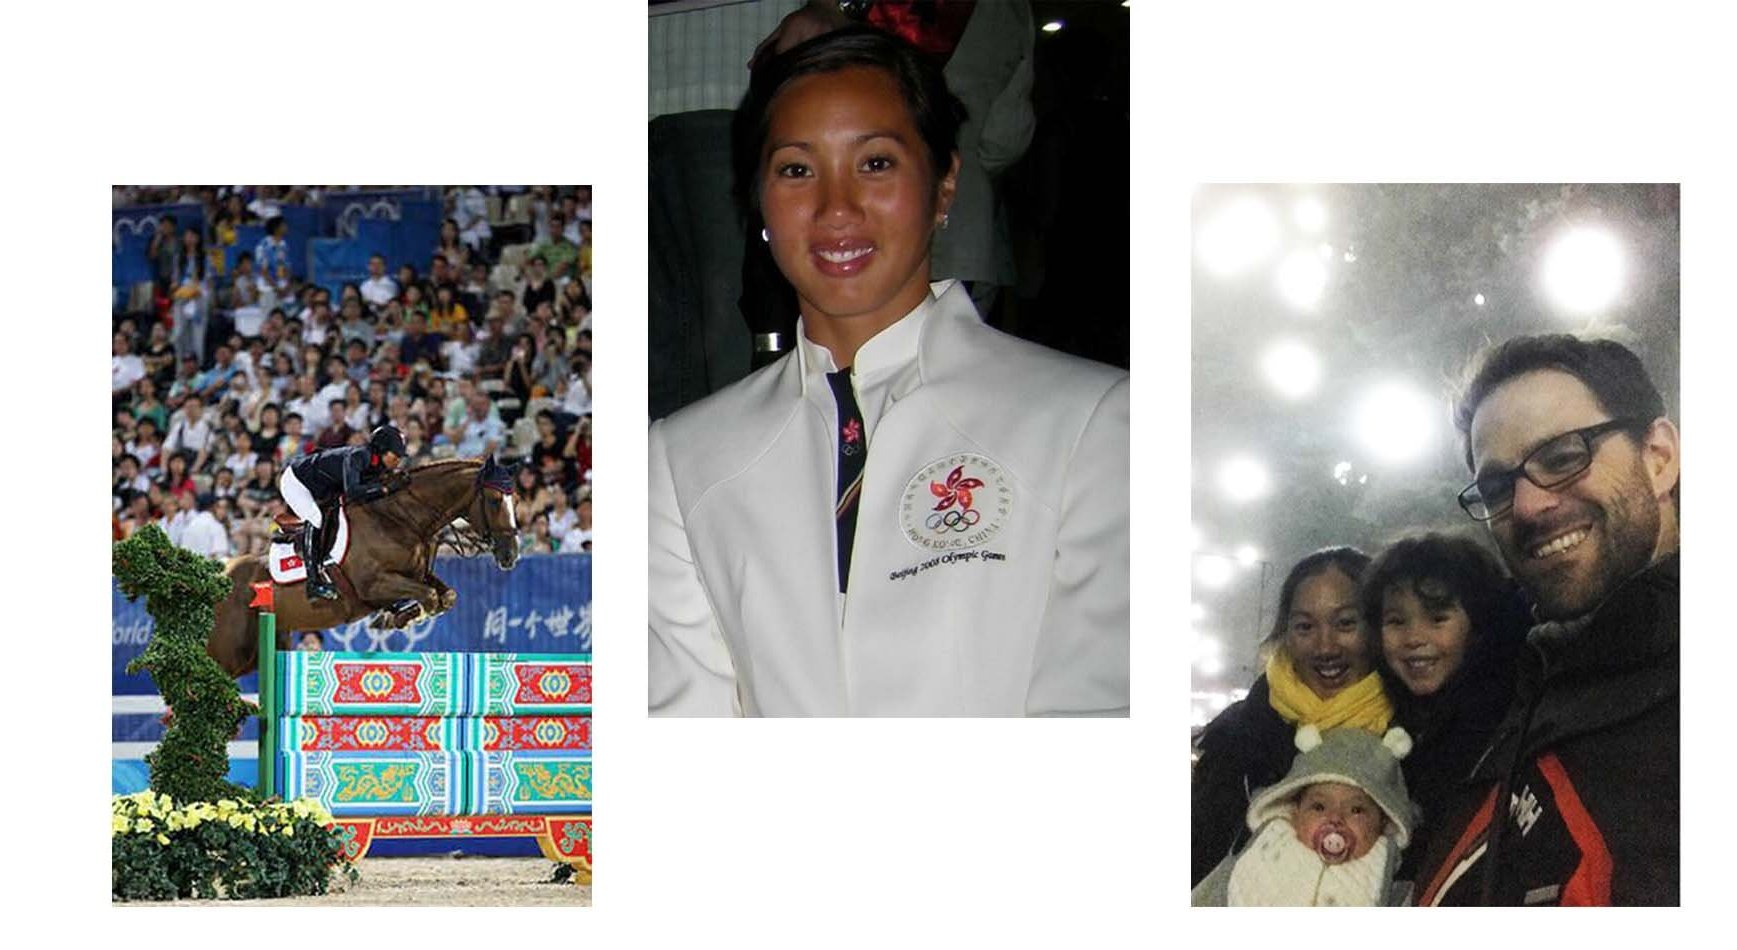 Samantha-Lam-equestrian-family-and-competition